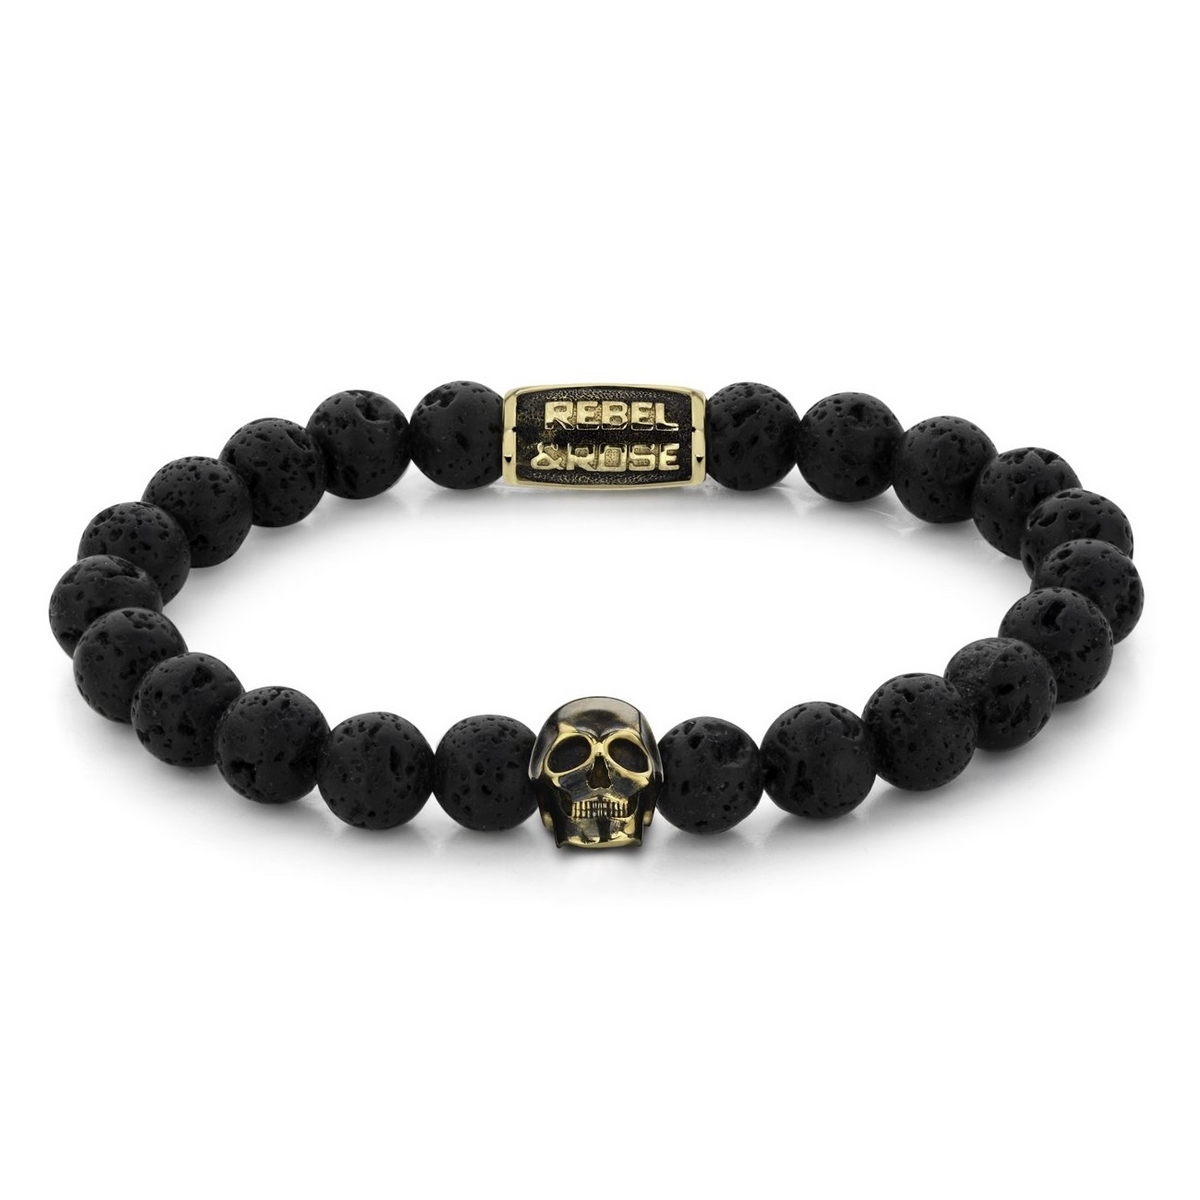 Rebel and Rose RR-SK002-G-S Armband Skull Black Moon yellow gold plated S 8mm 16.5